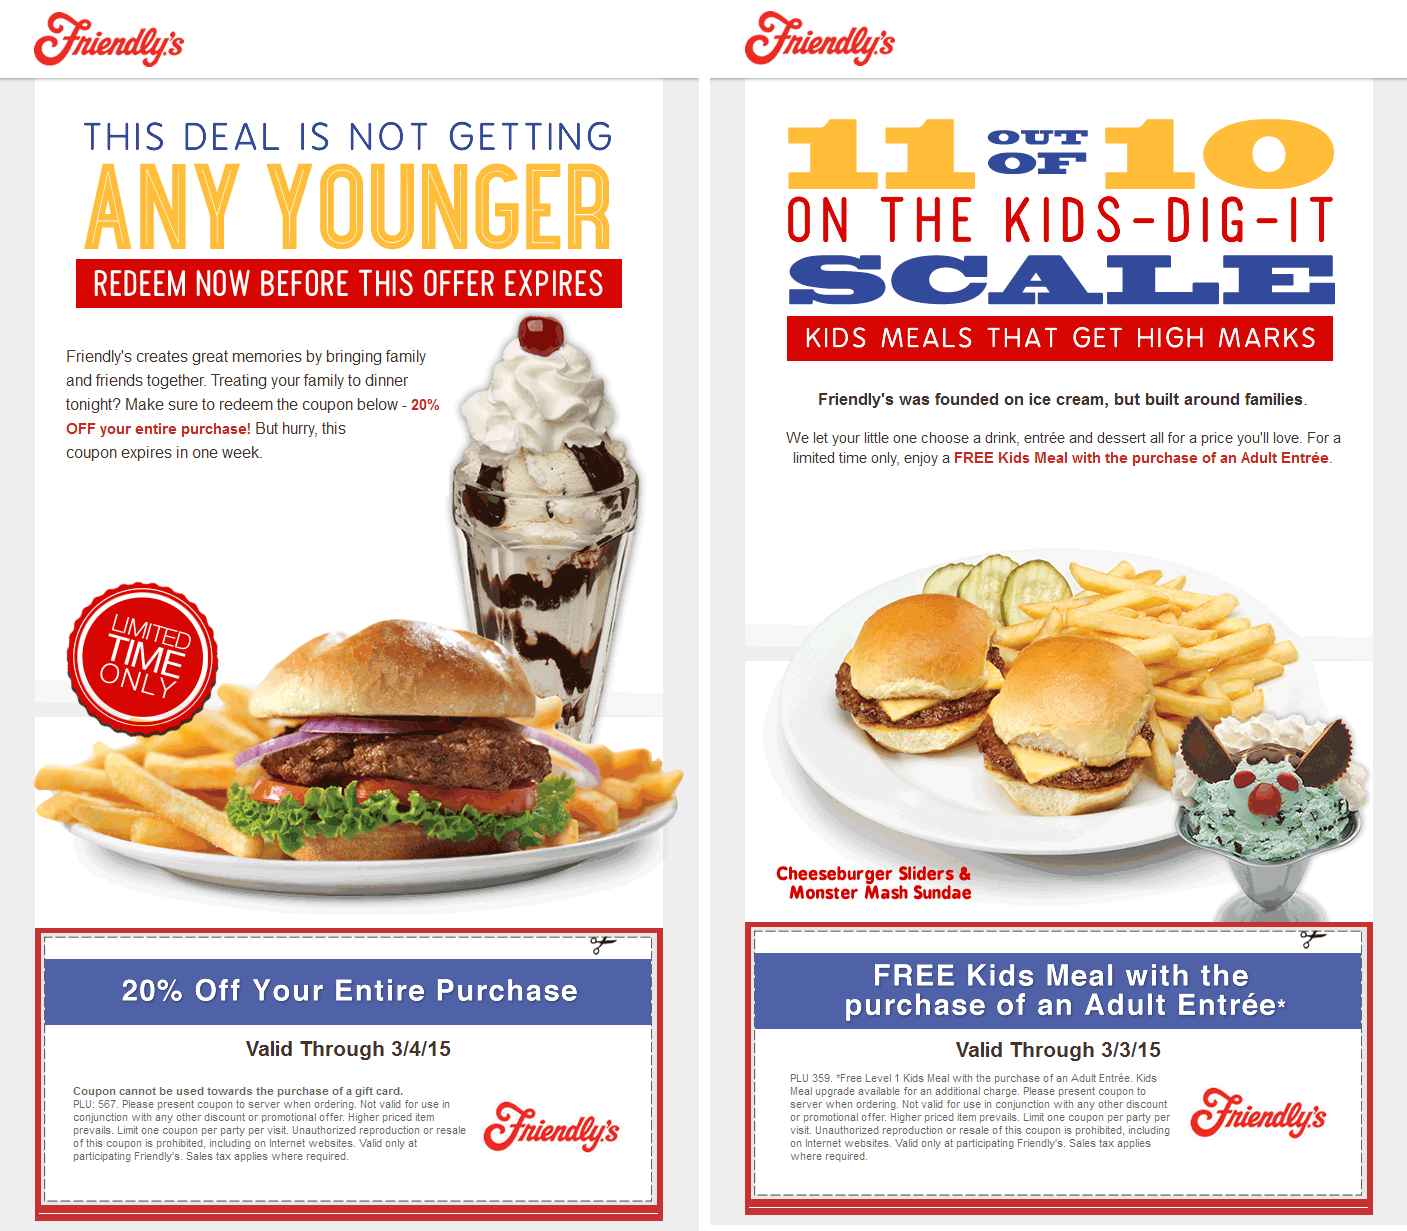 Friendlys Coupon June 2017 20% off & more at Friendlys restaurants